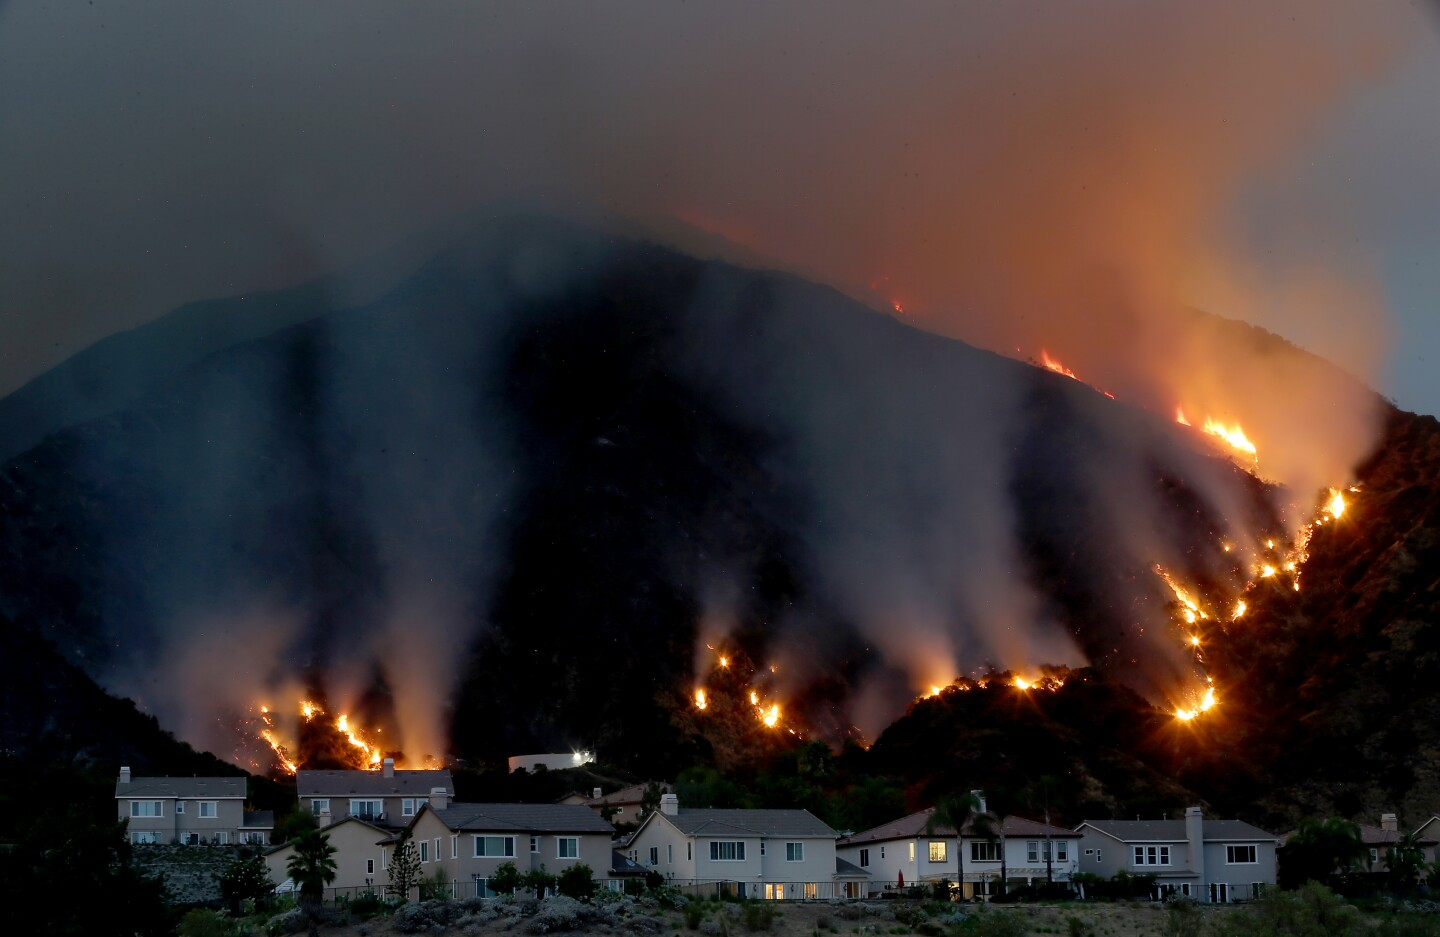 The Ranch fire burns in the hills above a cluster of homes along the San Gabriel River.